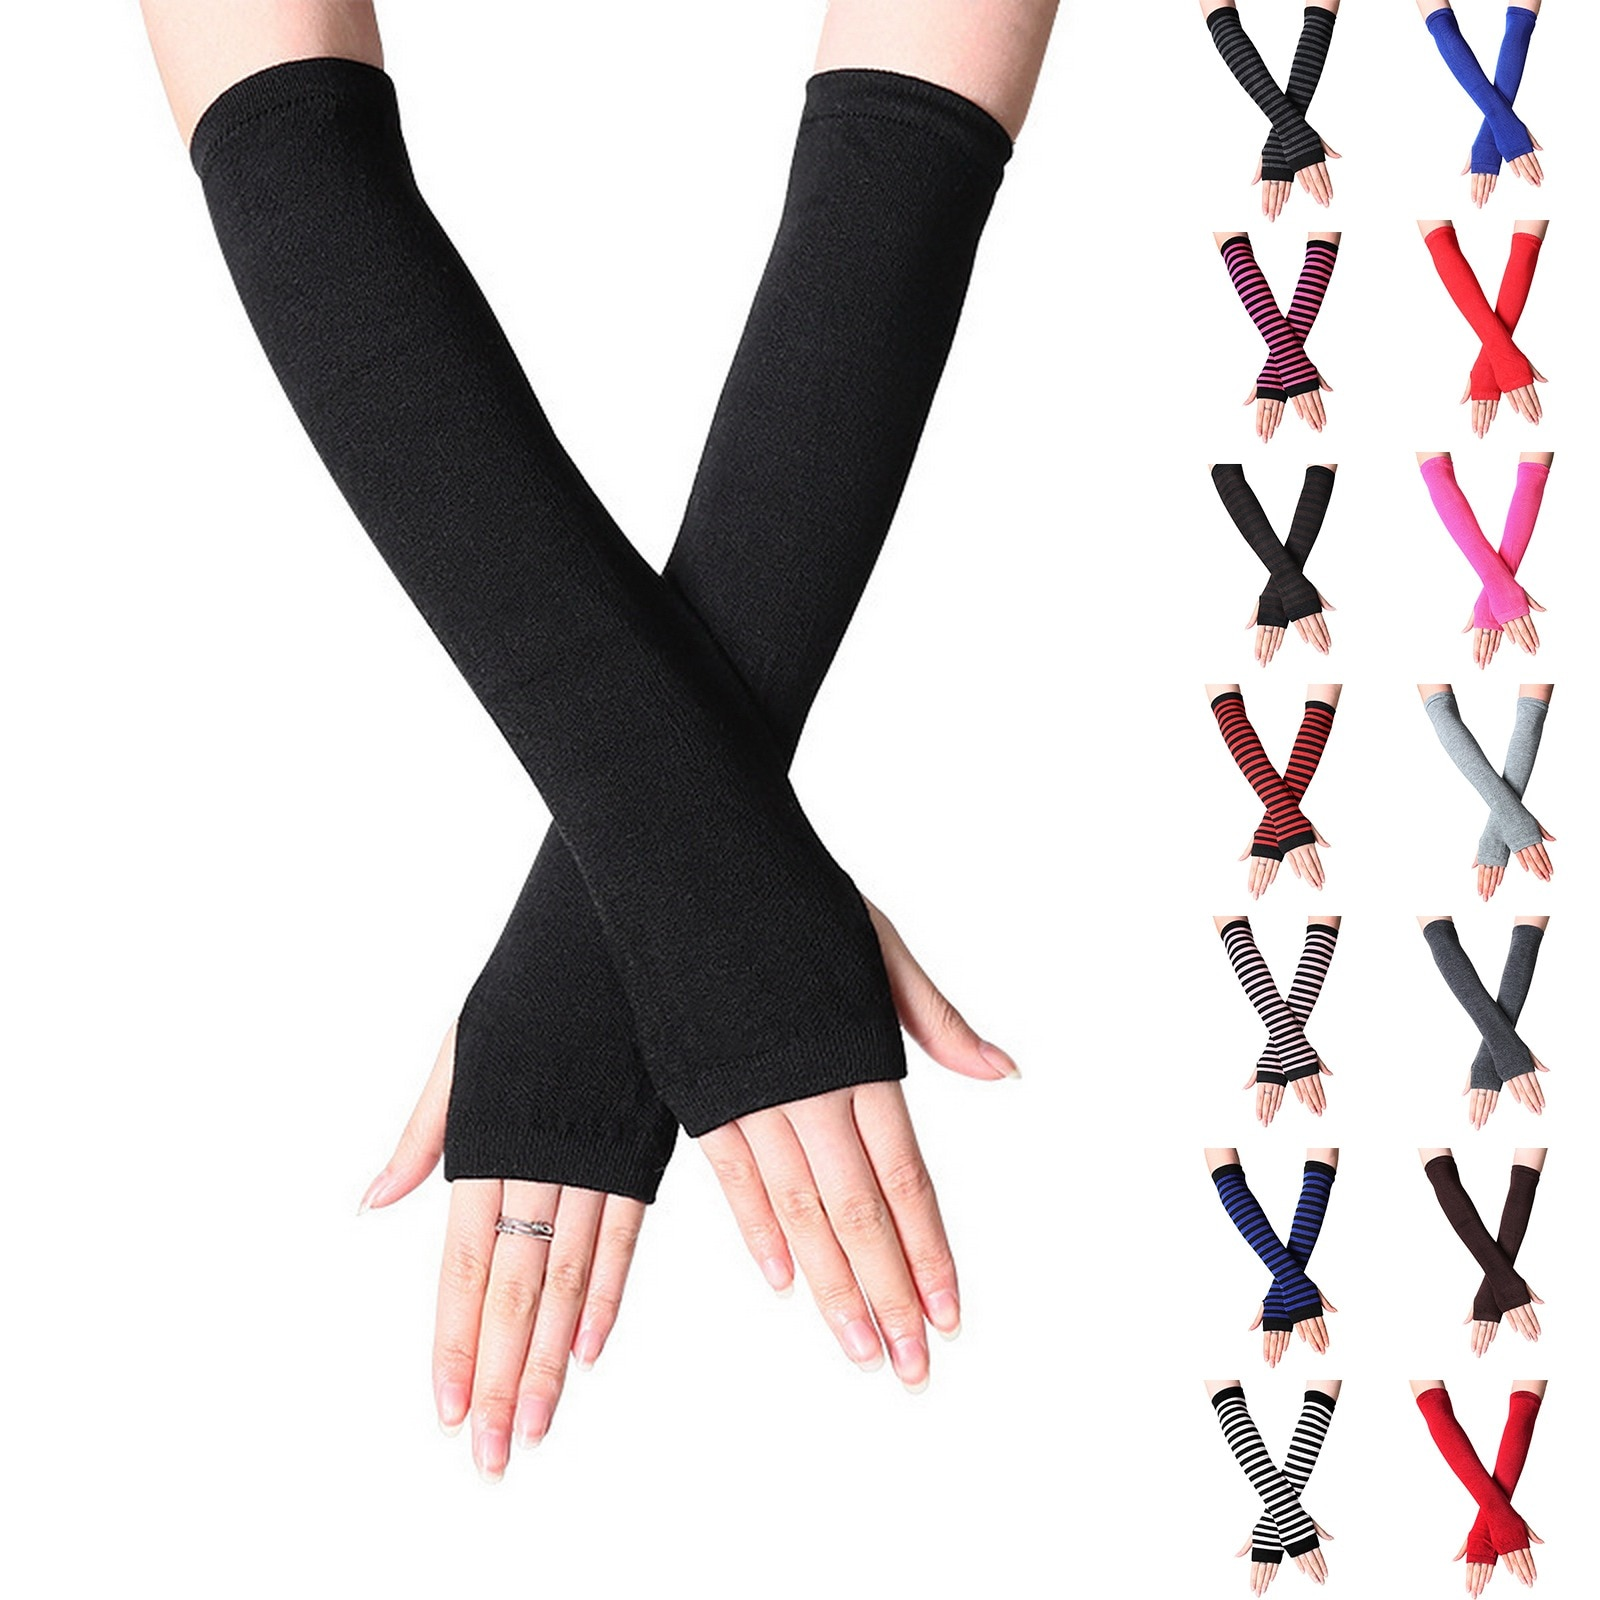 arsuxeo compression sleeves arm warmer running sleeves cycling sun uv protection for outdoor sport hiking ciclismo 1 pair 1 Pair Men Women Arm Sleeves Sun UV Protection Ice Cool Arm Cover Arm Warmers for Cycling Fishing Running Climbing Sport